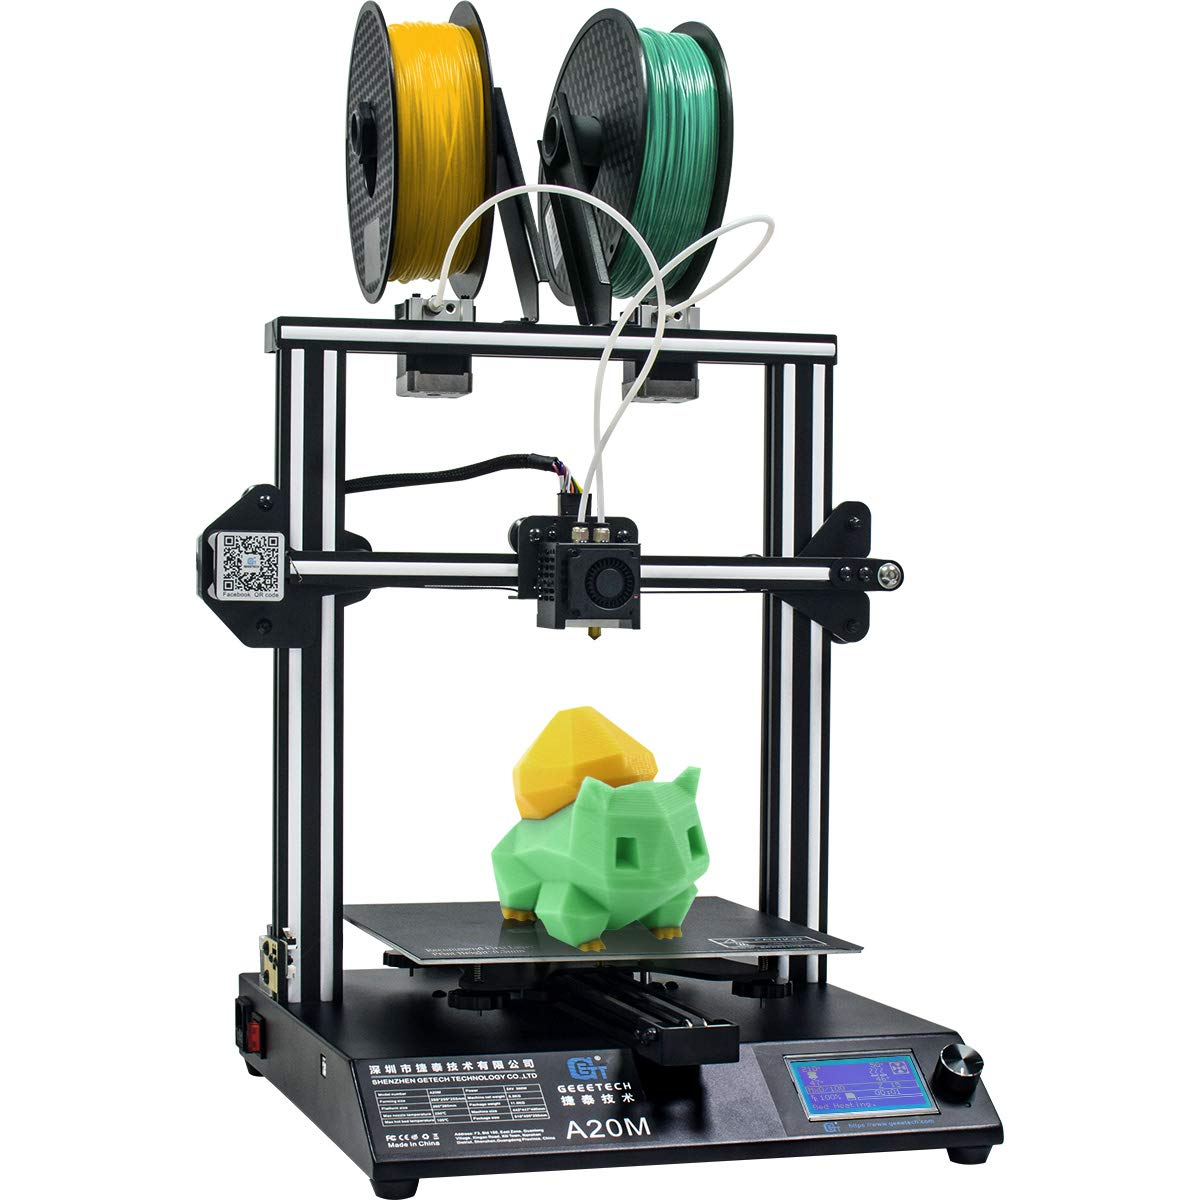 GEEETECH New A20M 3D Printer with Mix-Color Printing, Integrated Building  Base & Dual extruder Design, Filament Detector and Break-resuming Function,